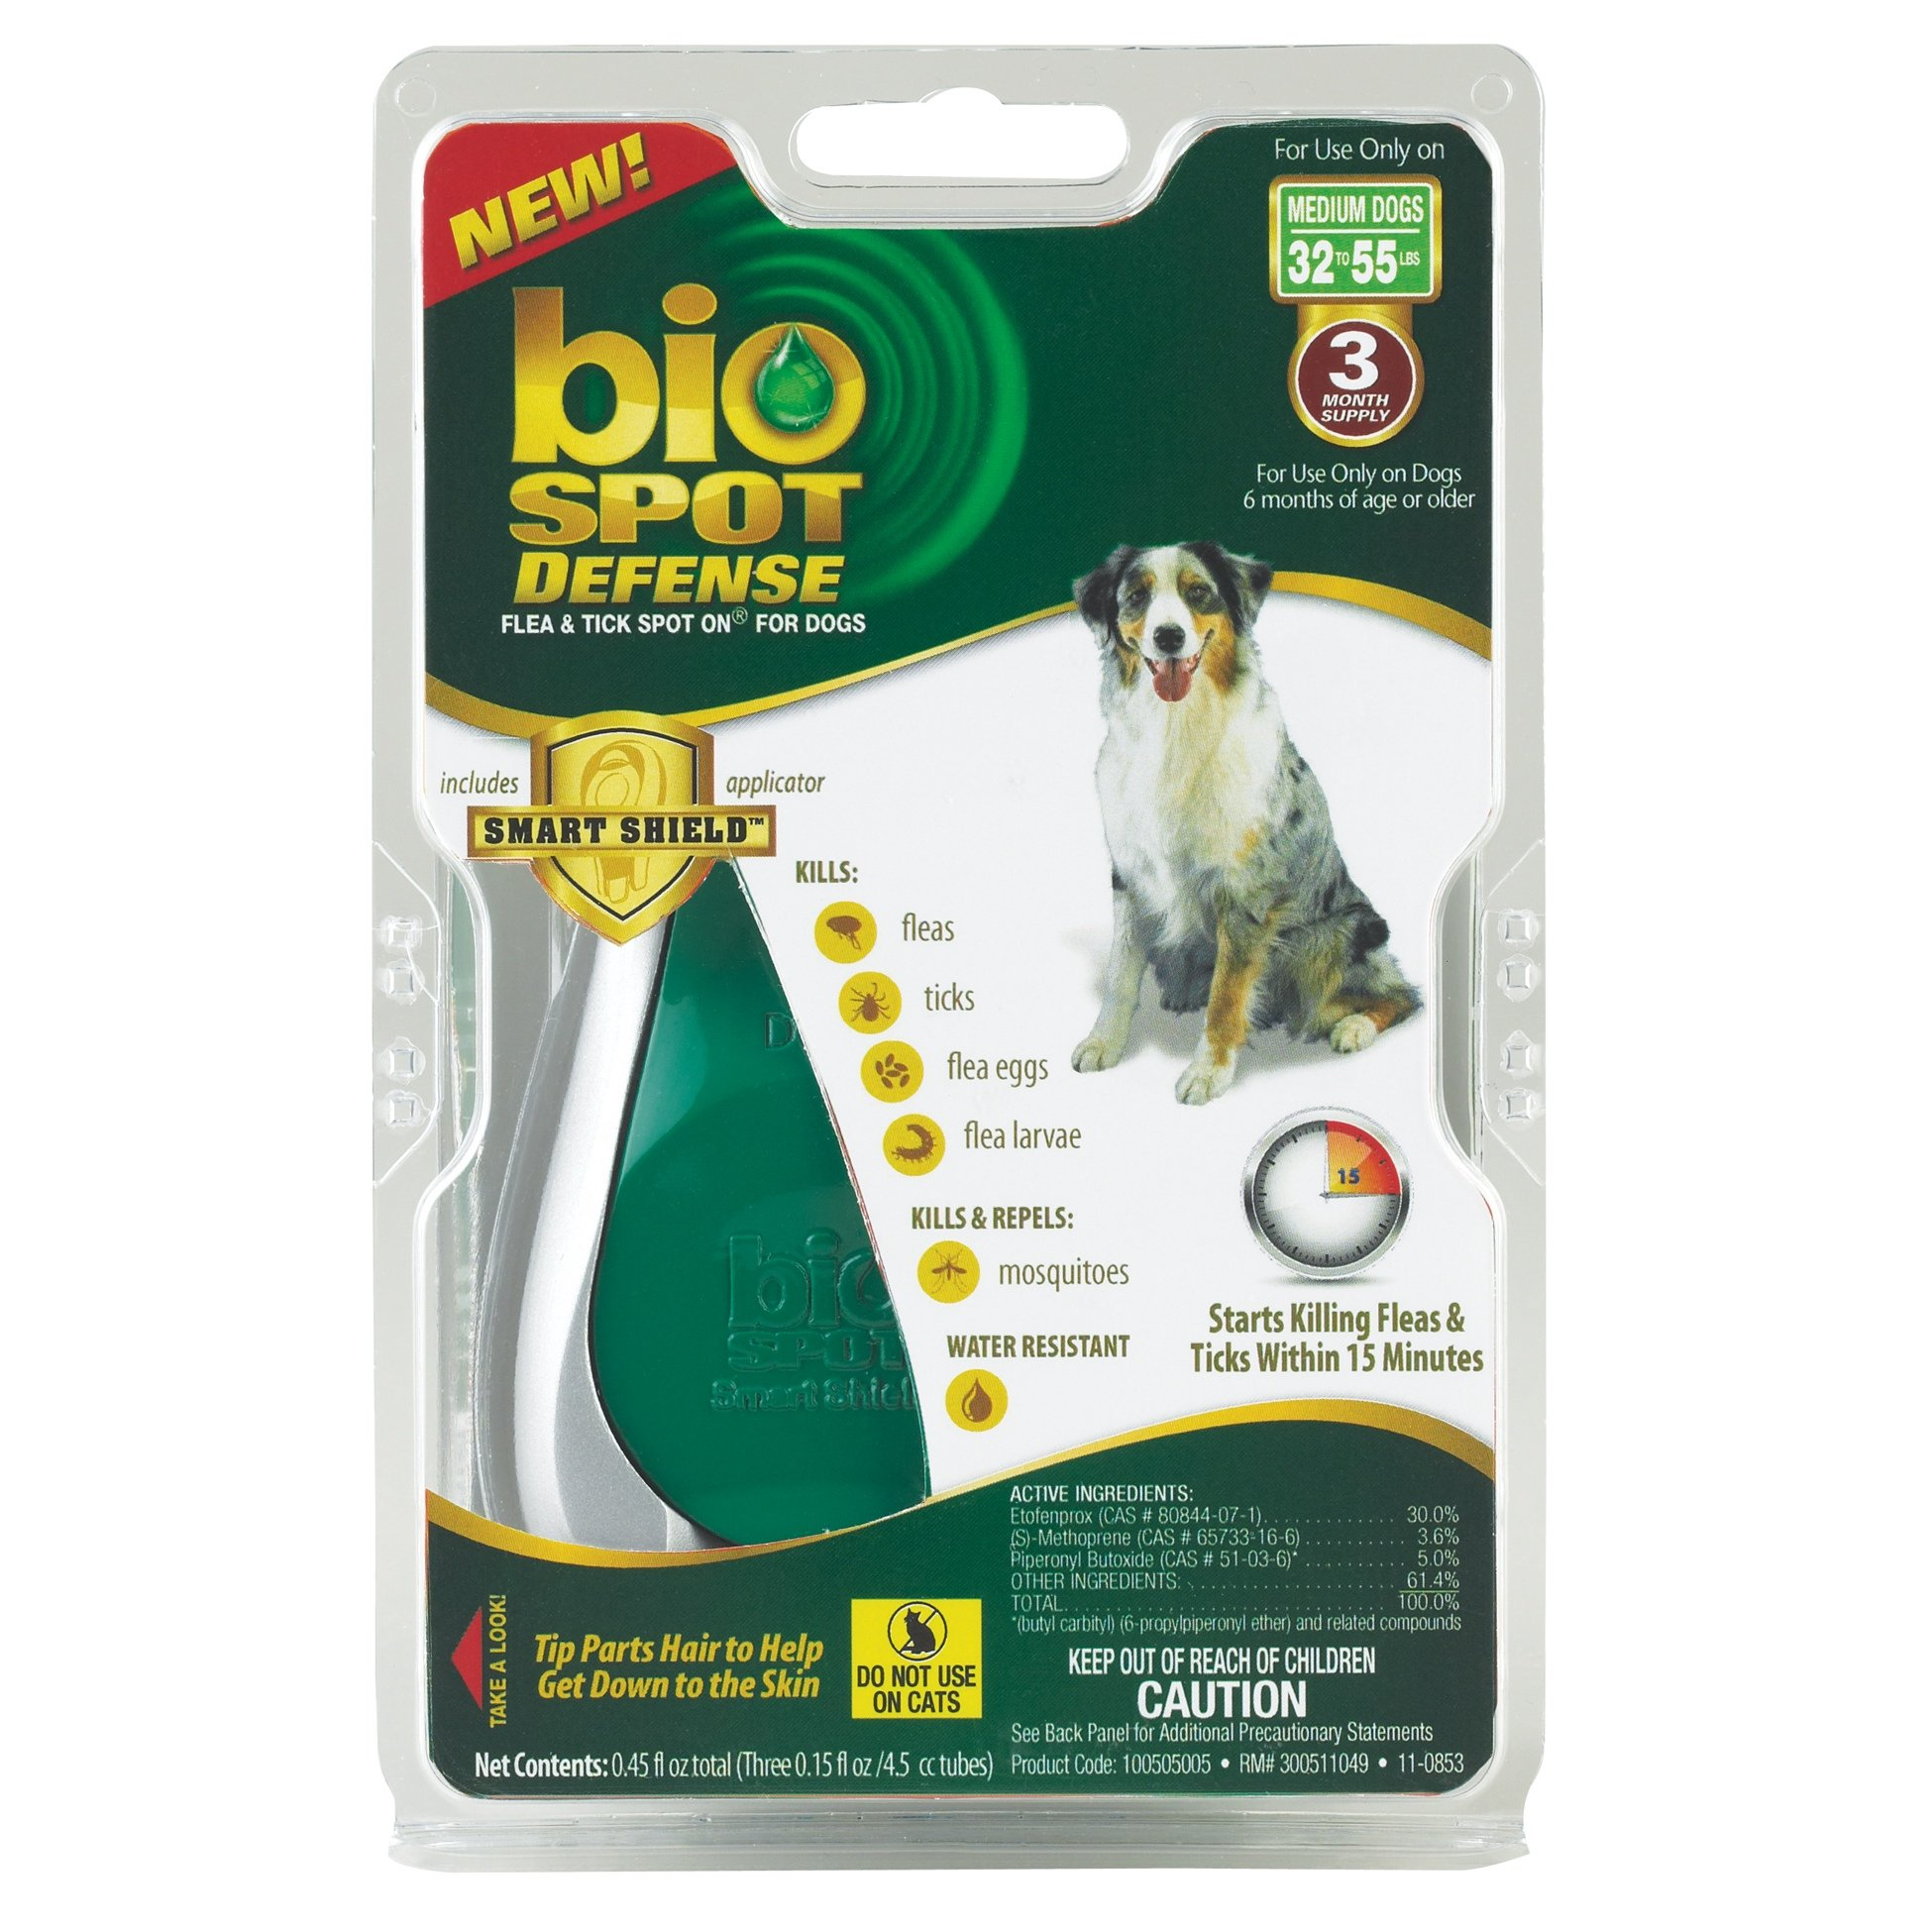 Bio Spot Defense Flea and Tick Spot On with Applicator for Dogs 32-55-Pound- 3 Month Supply